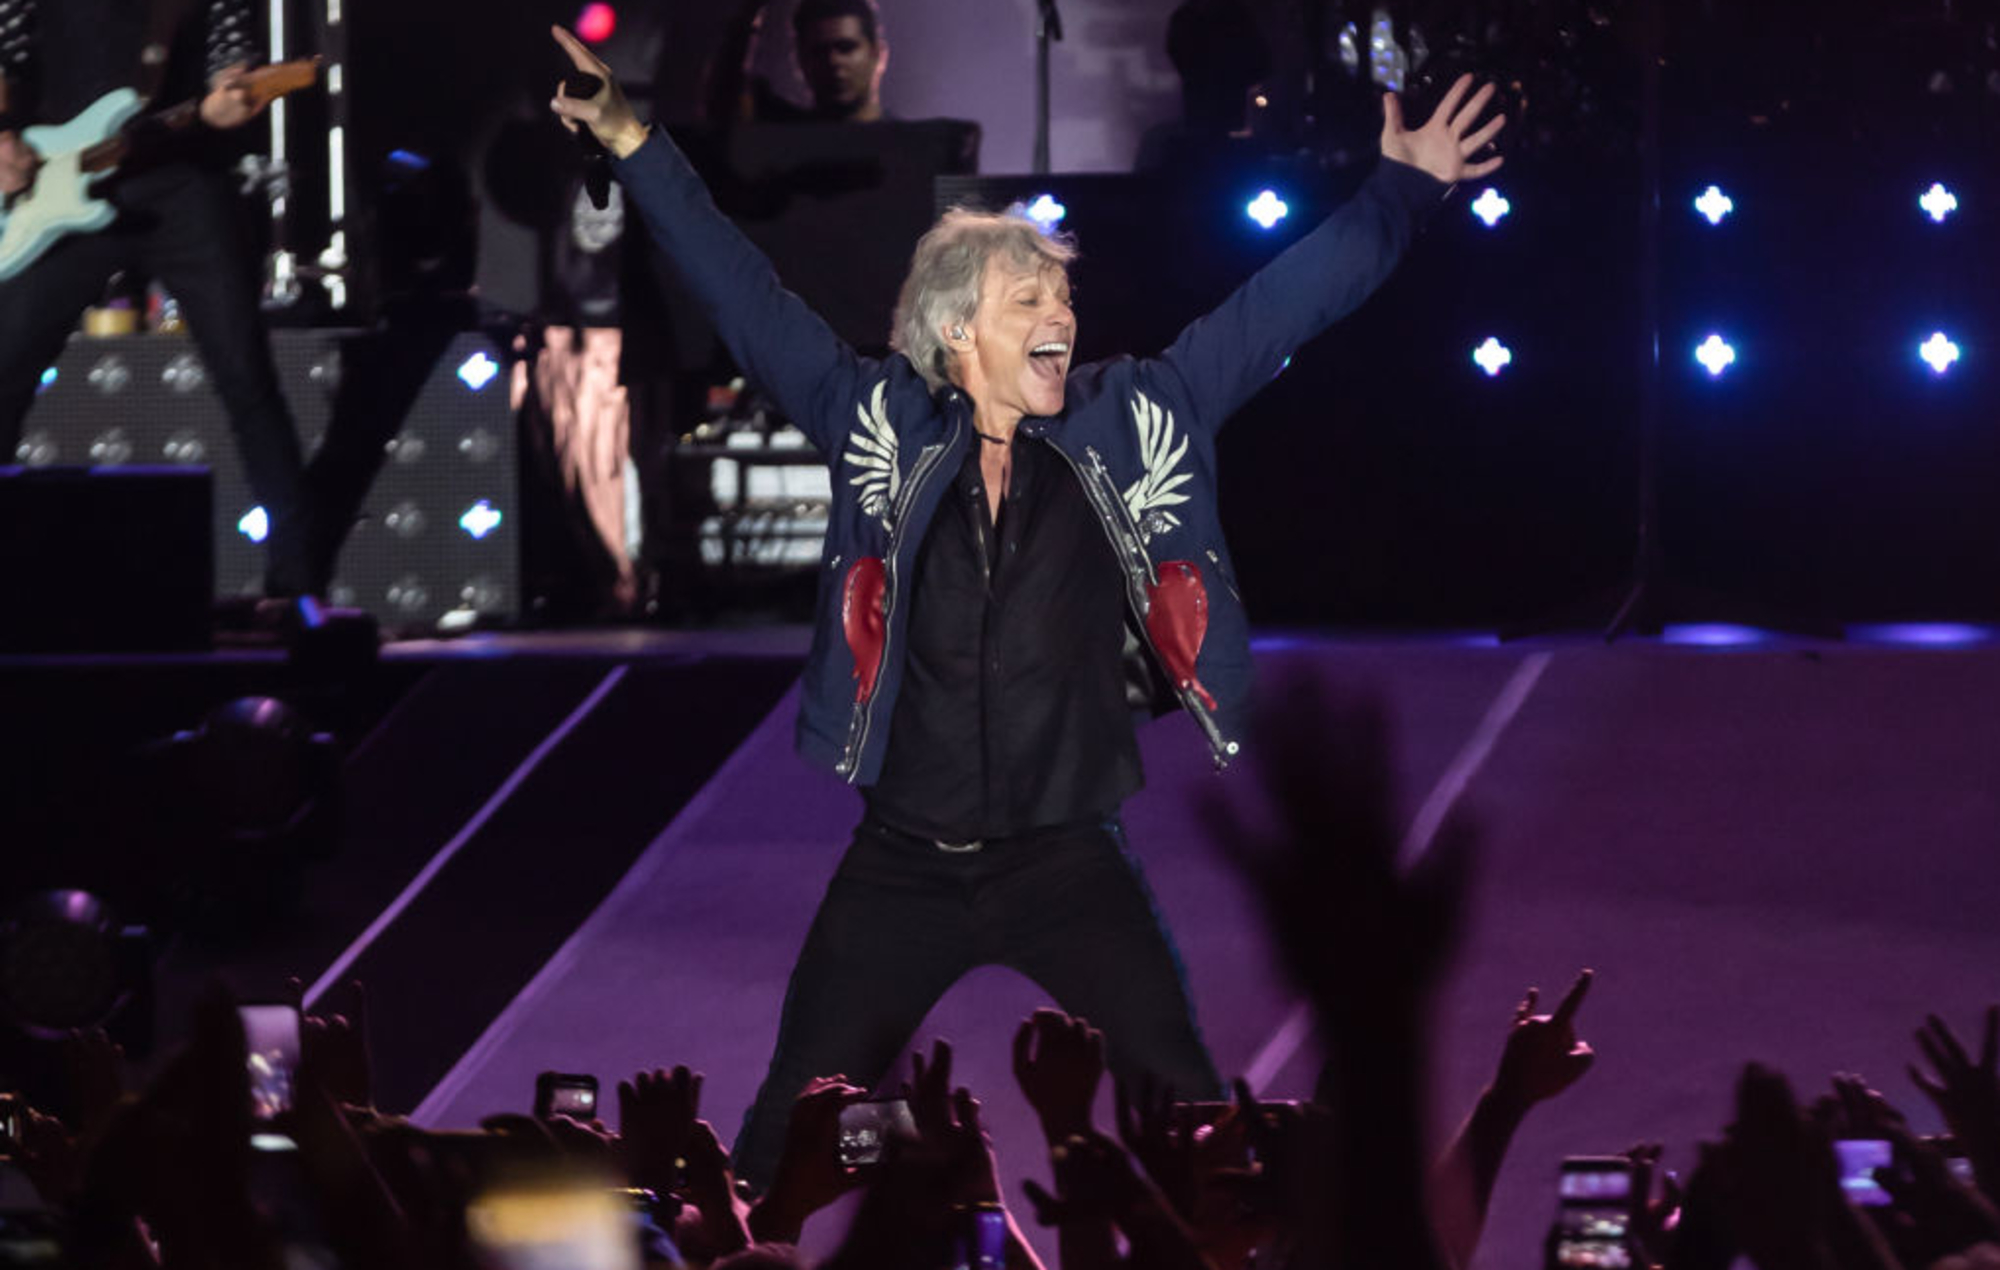 Bon Jovi announce new album, release new song 'Limitless'